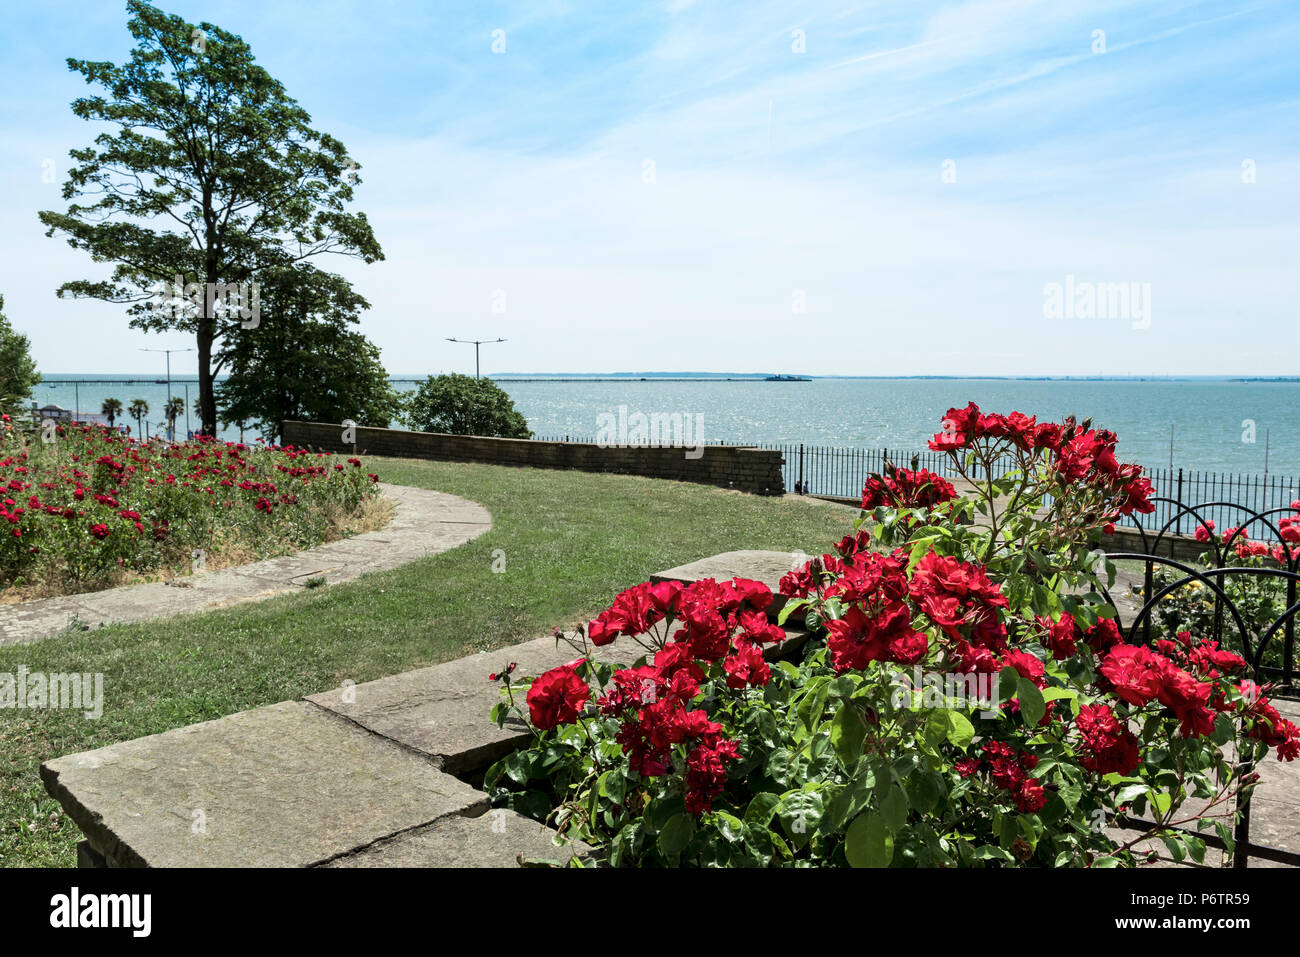 Formal planting with coastal aspect, red roses bloom well overlooking the sea. - Stock Image